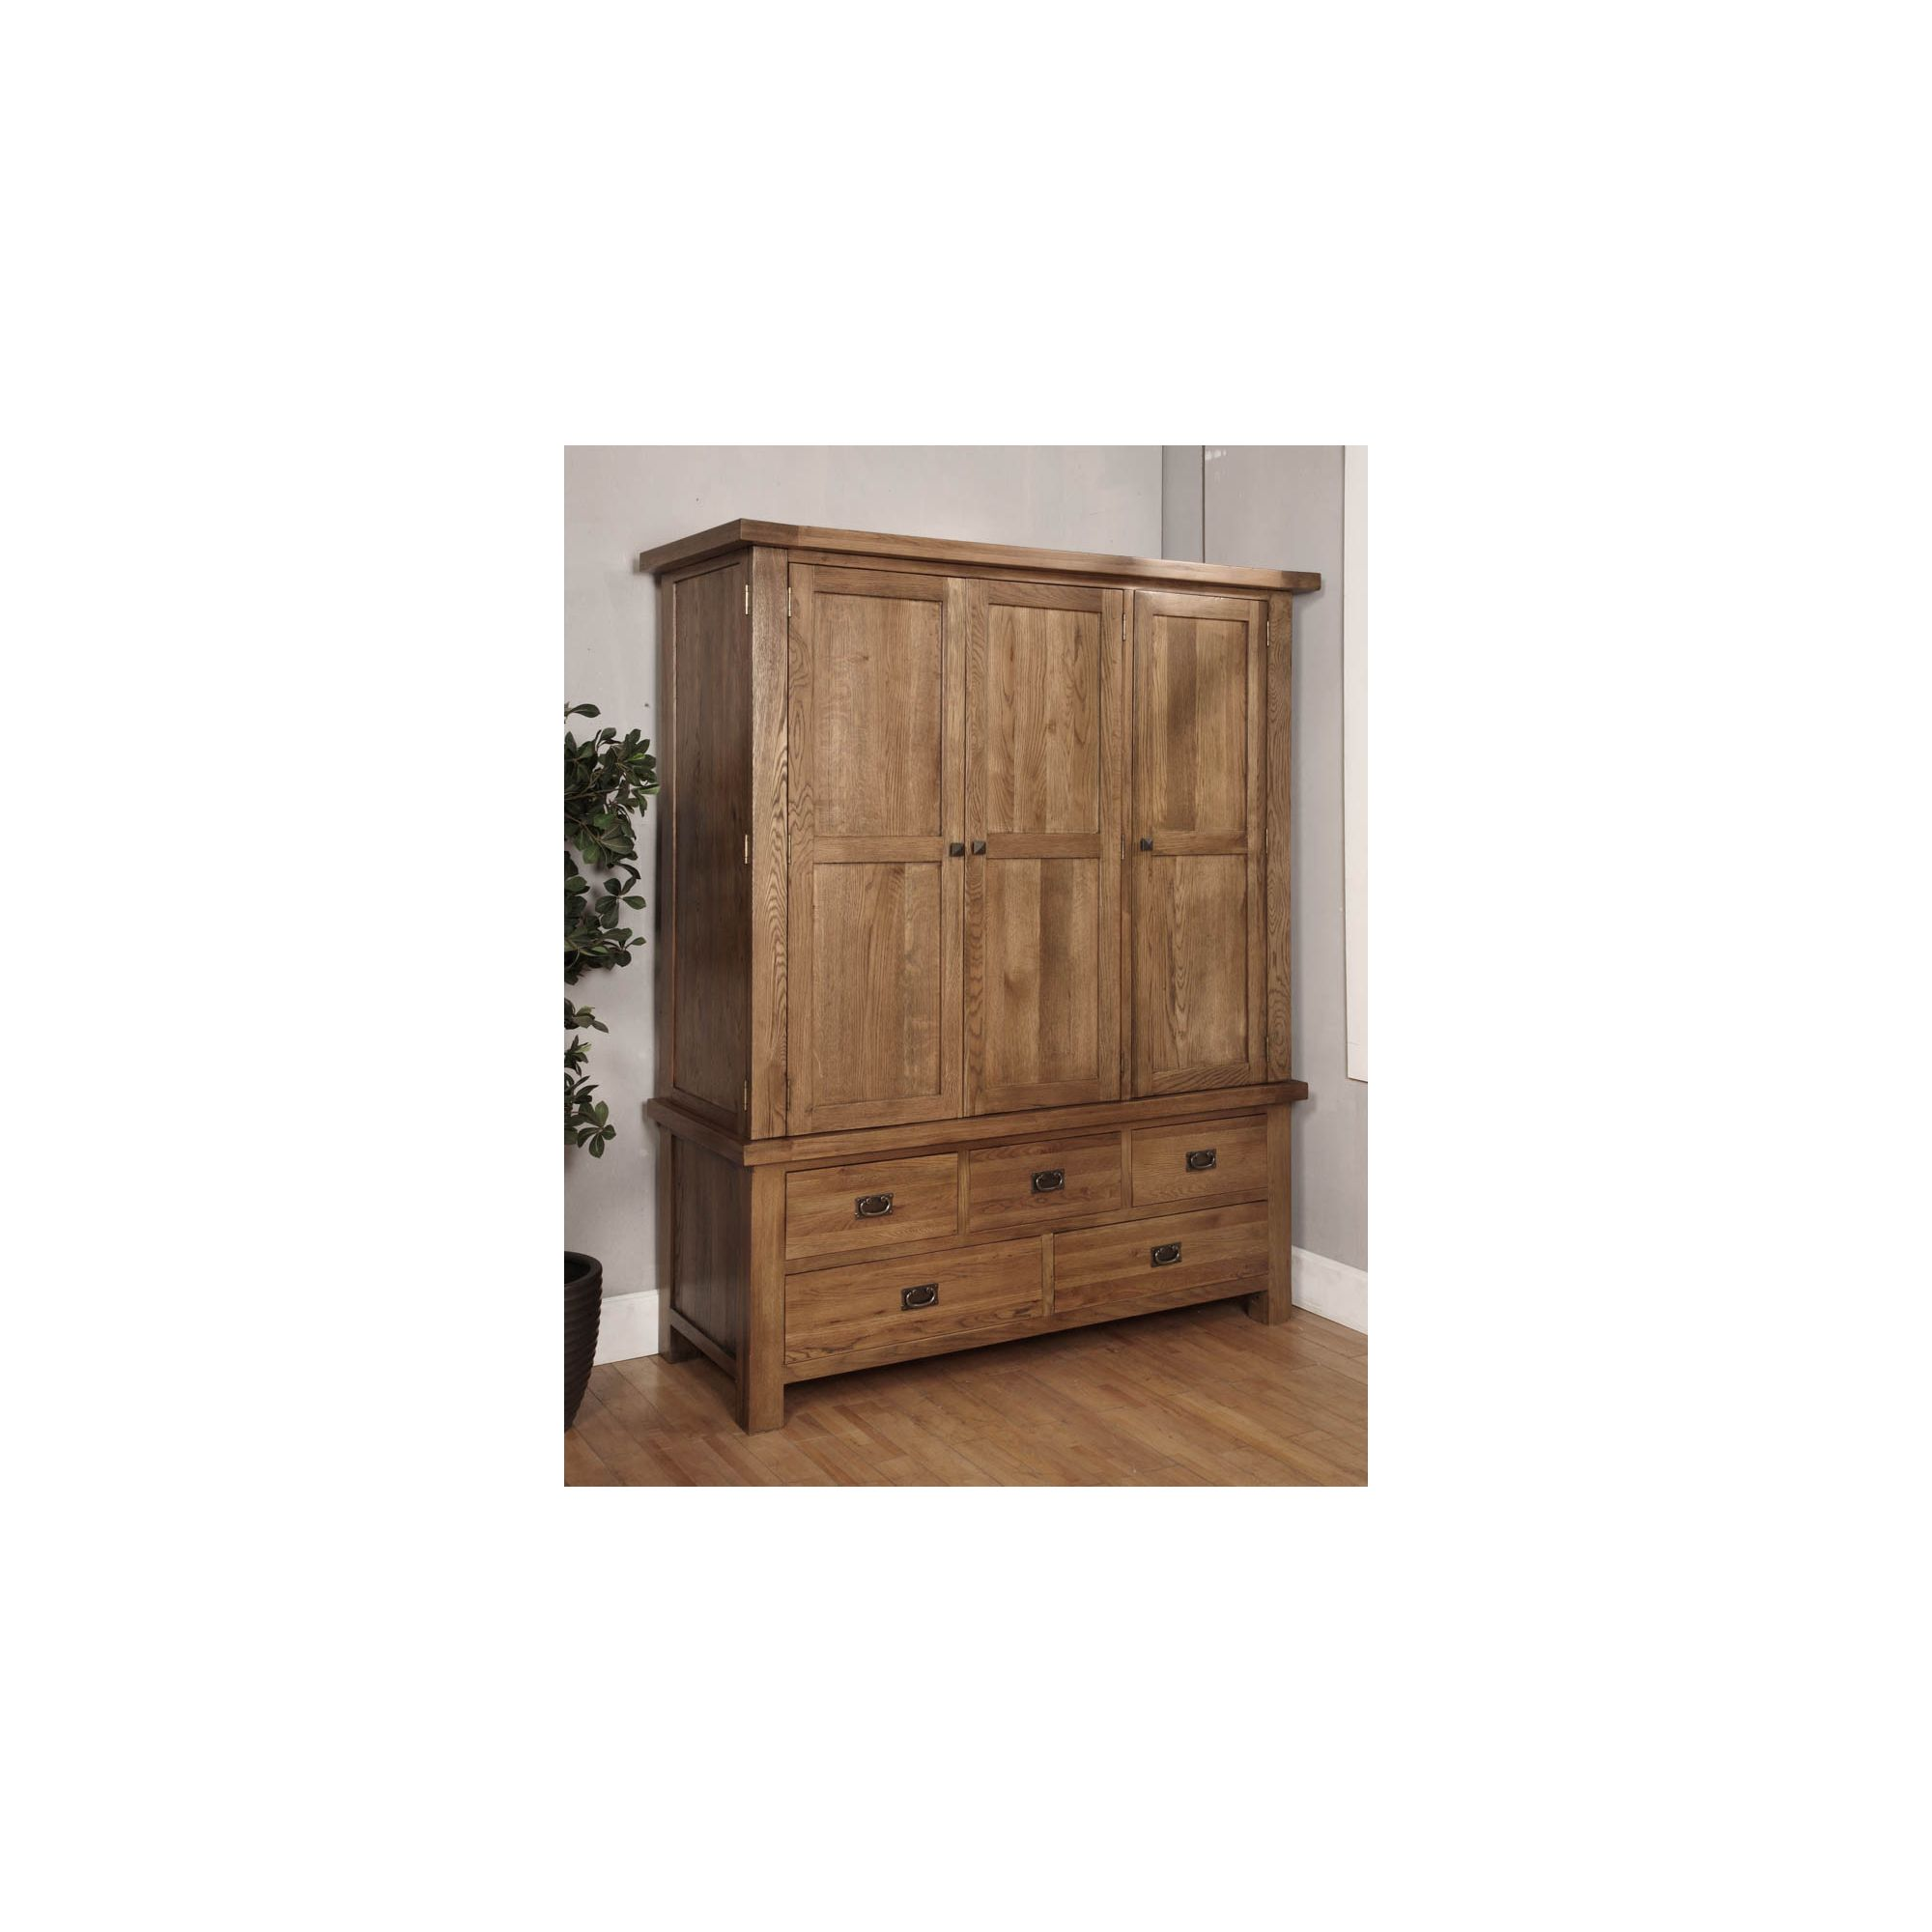 Hawkshead Brooklyn Triple Wardrobe in Rich Patina at Tesco Direct